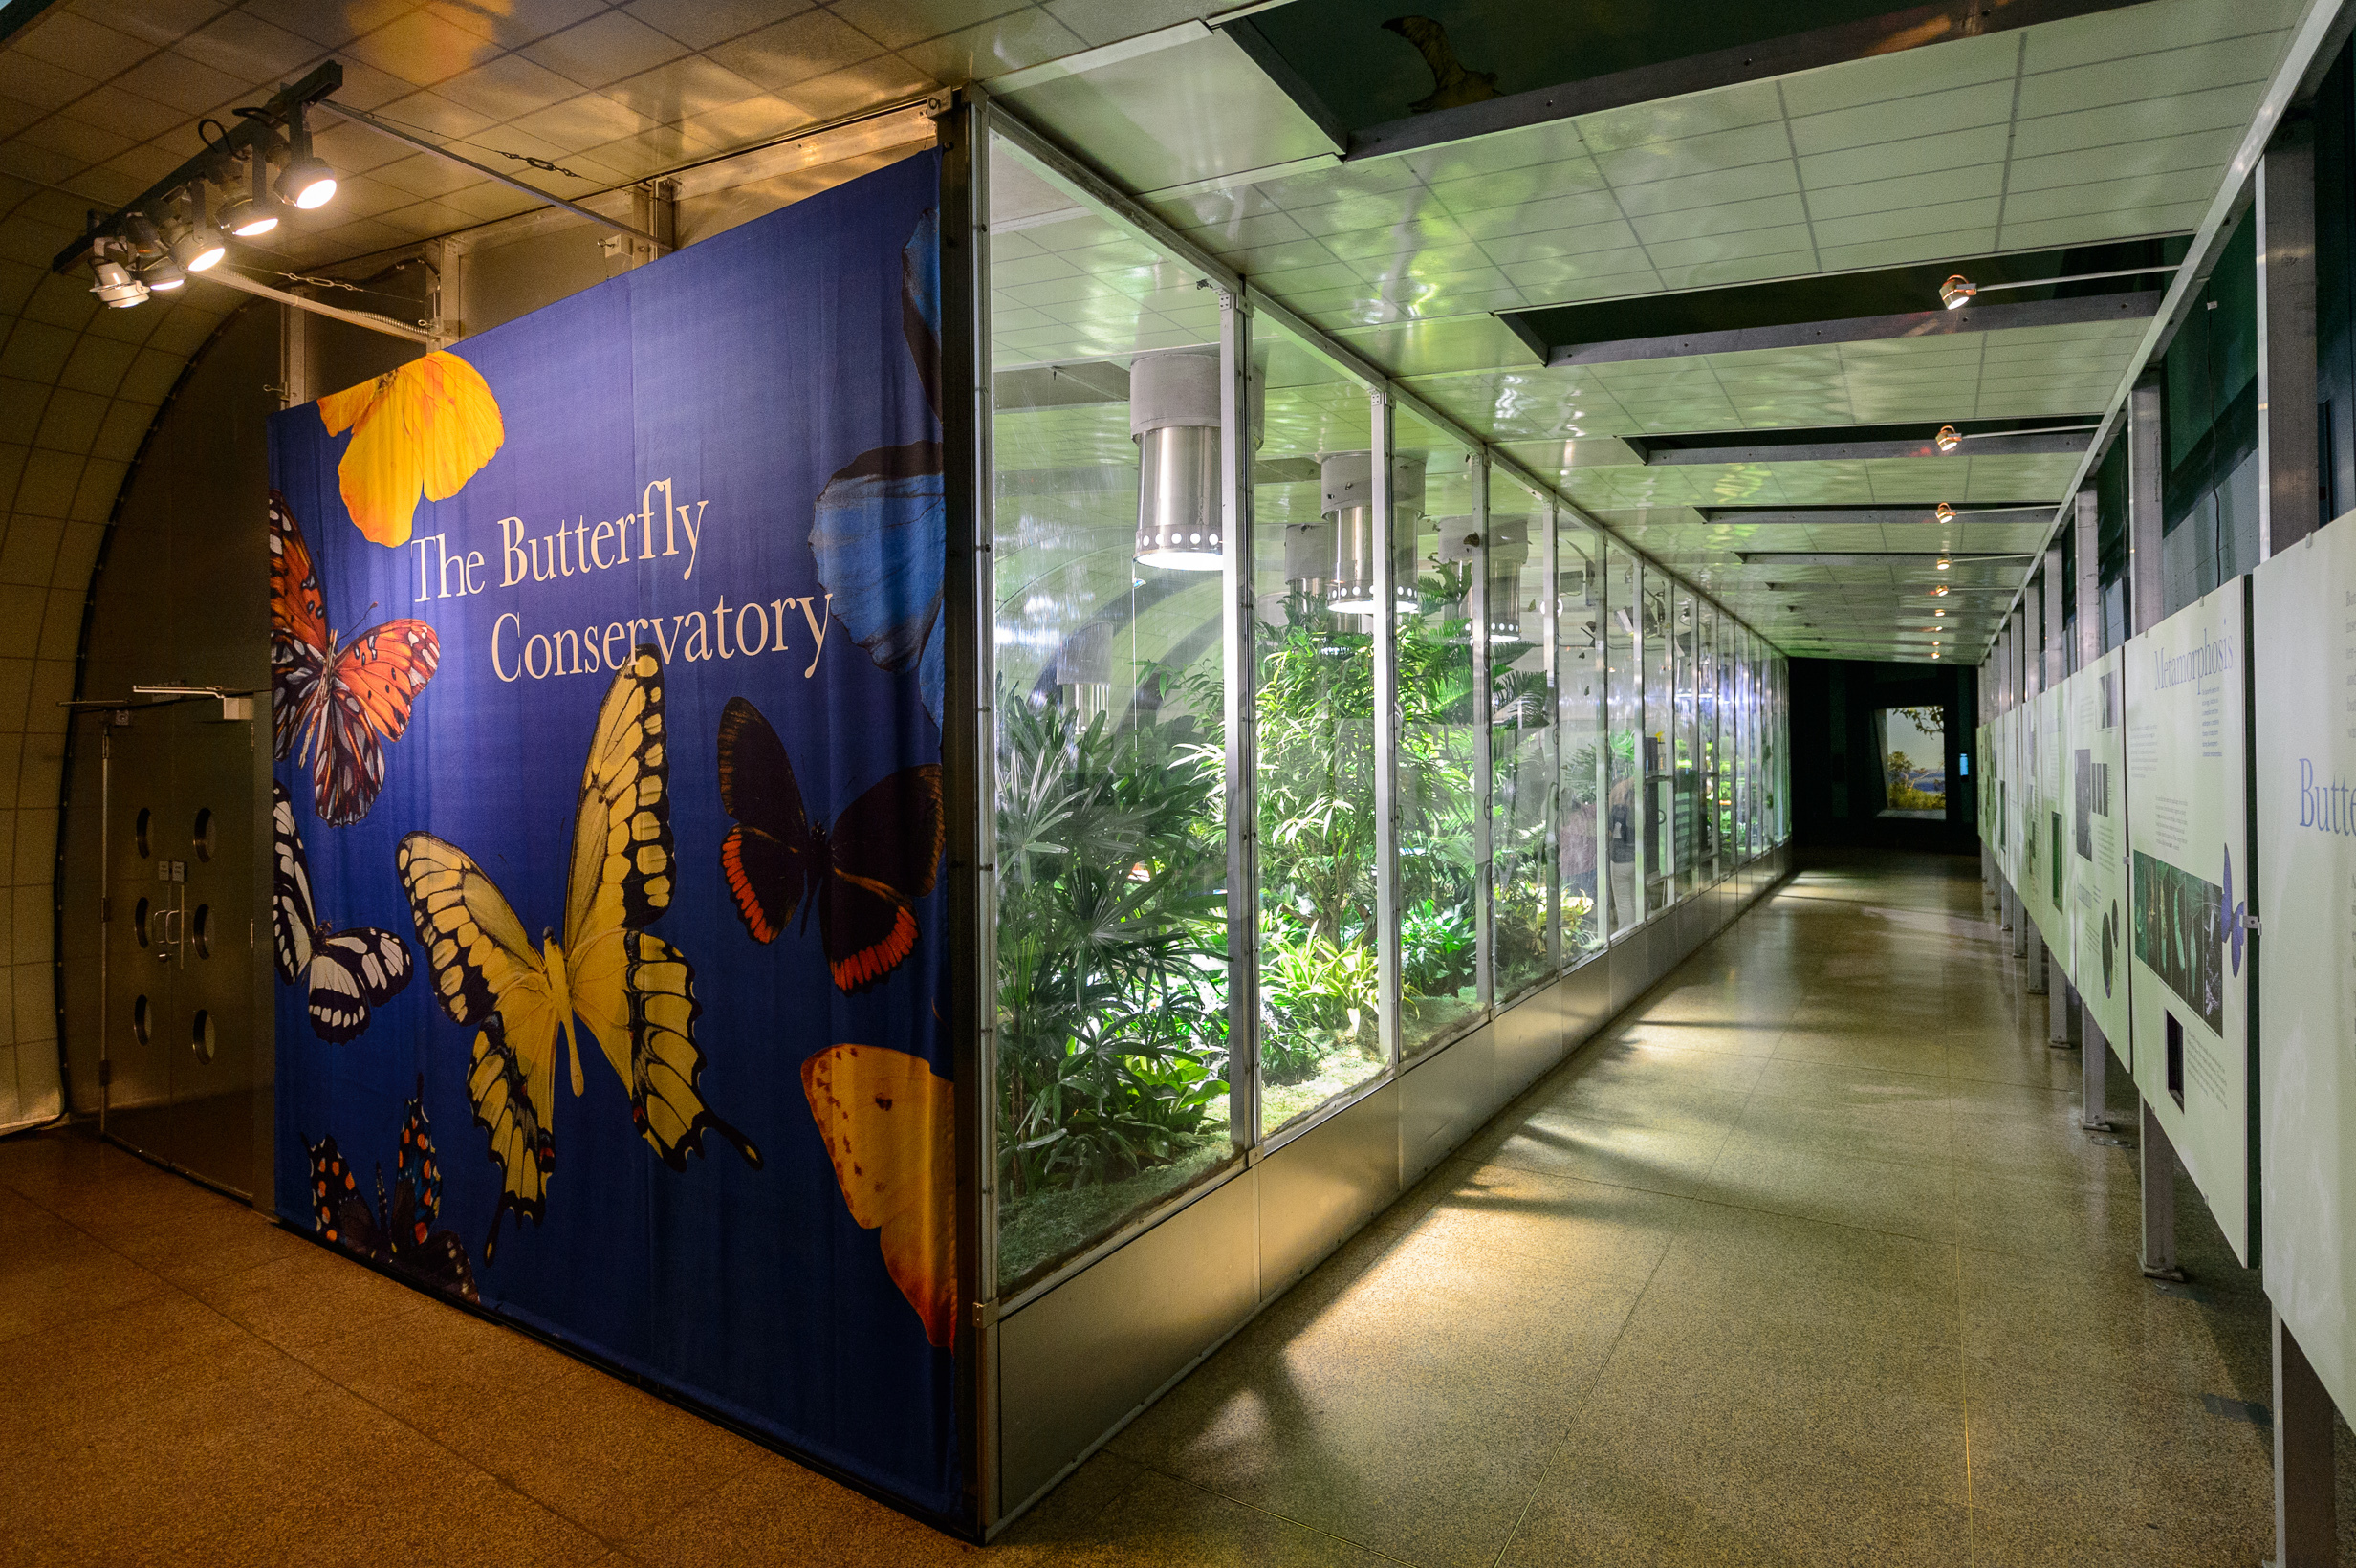 Let the Butterfly Conservatory set your heart a flutter